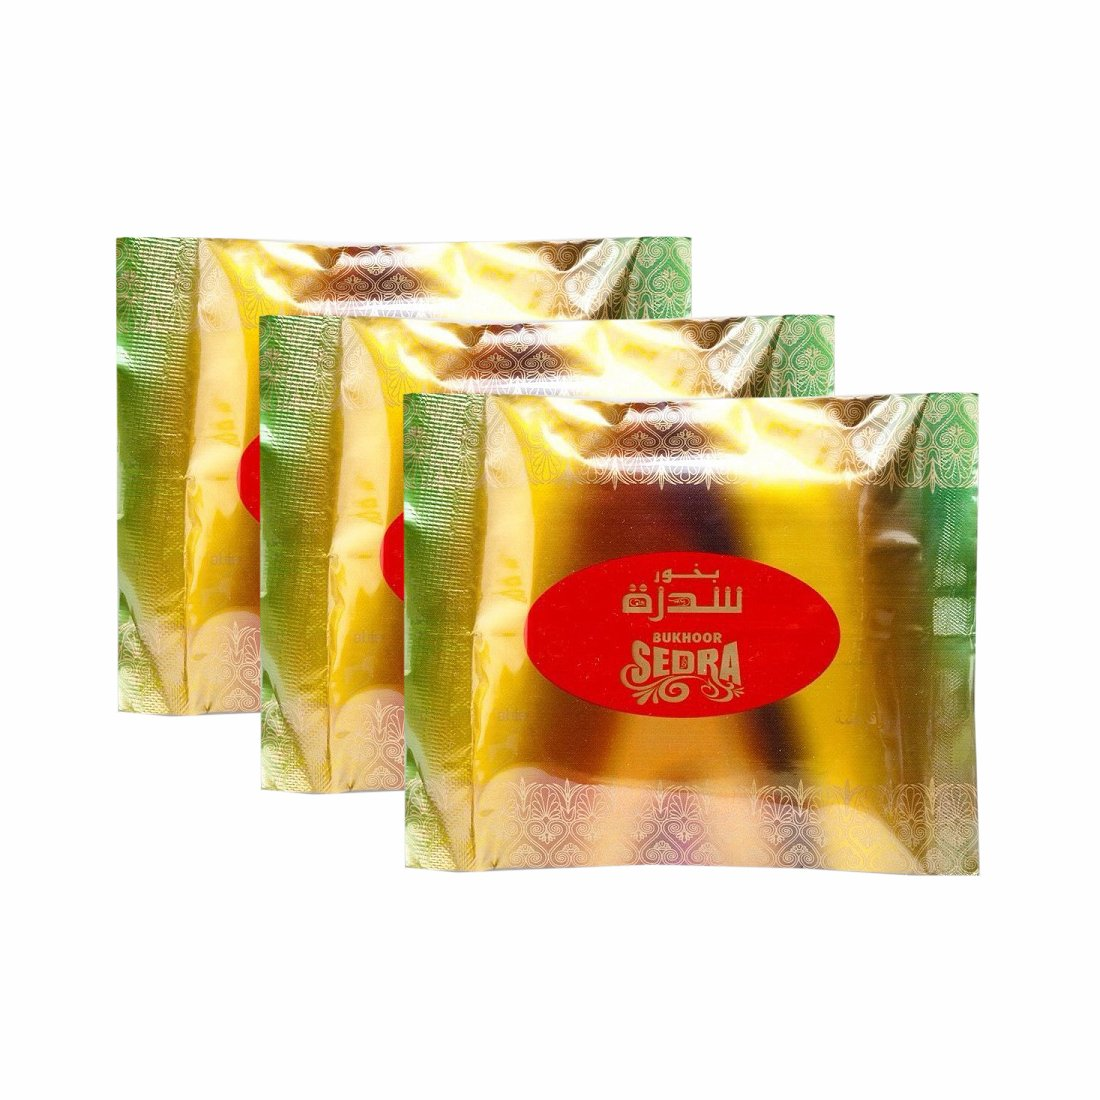 Al Haramain Bukhoor Sedra Bakhoor Burners Fragrance Paste Pack of 3